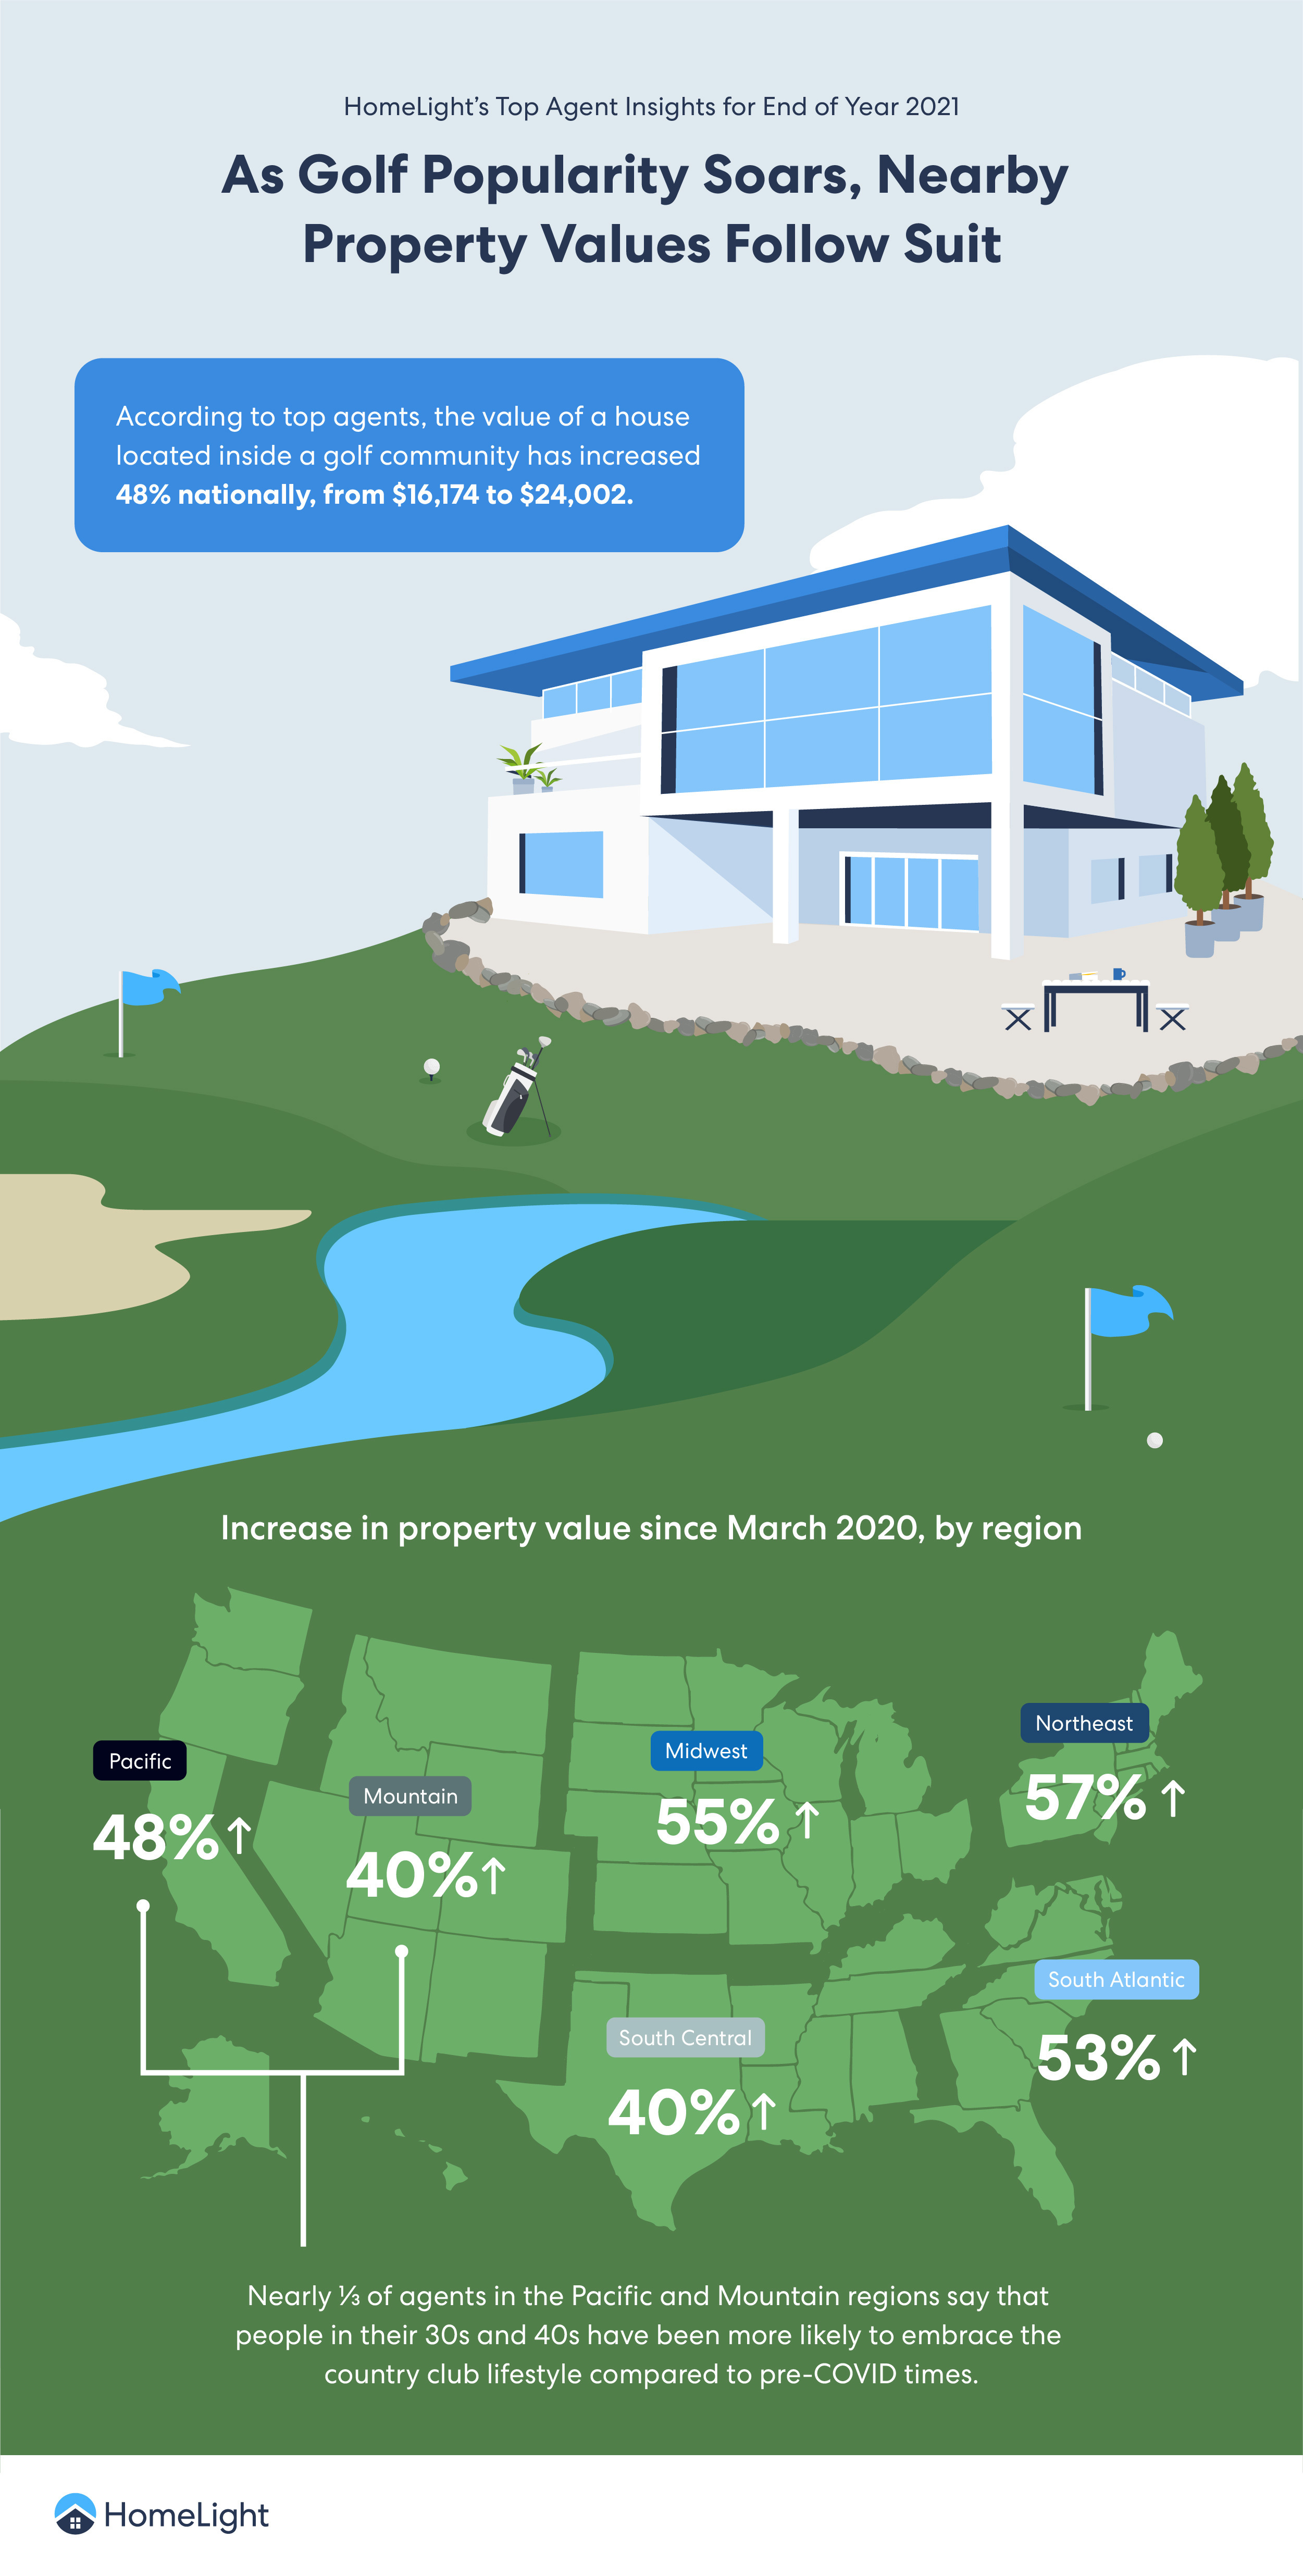 As Golf Popularity Soars, Nearby Property Values Follow Suit